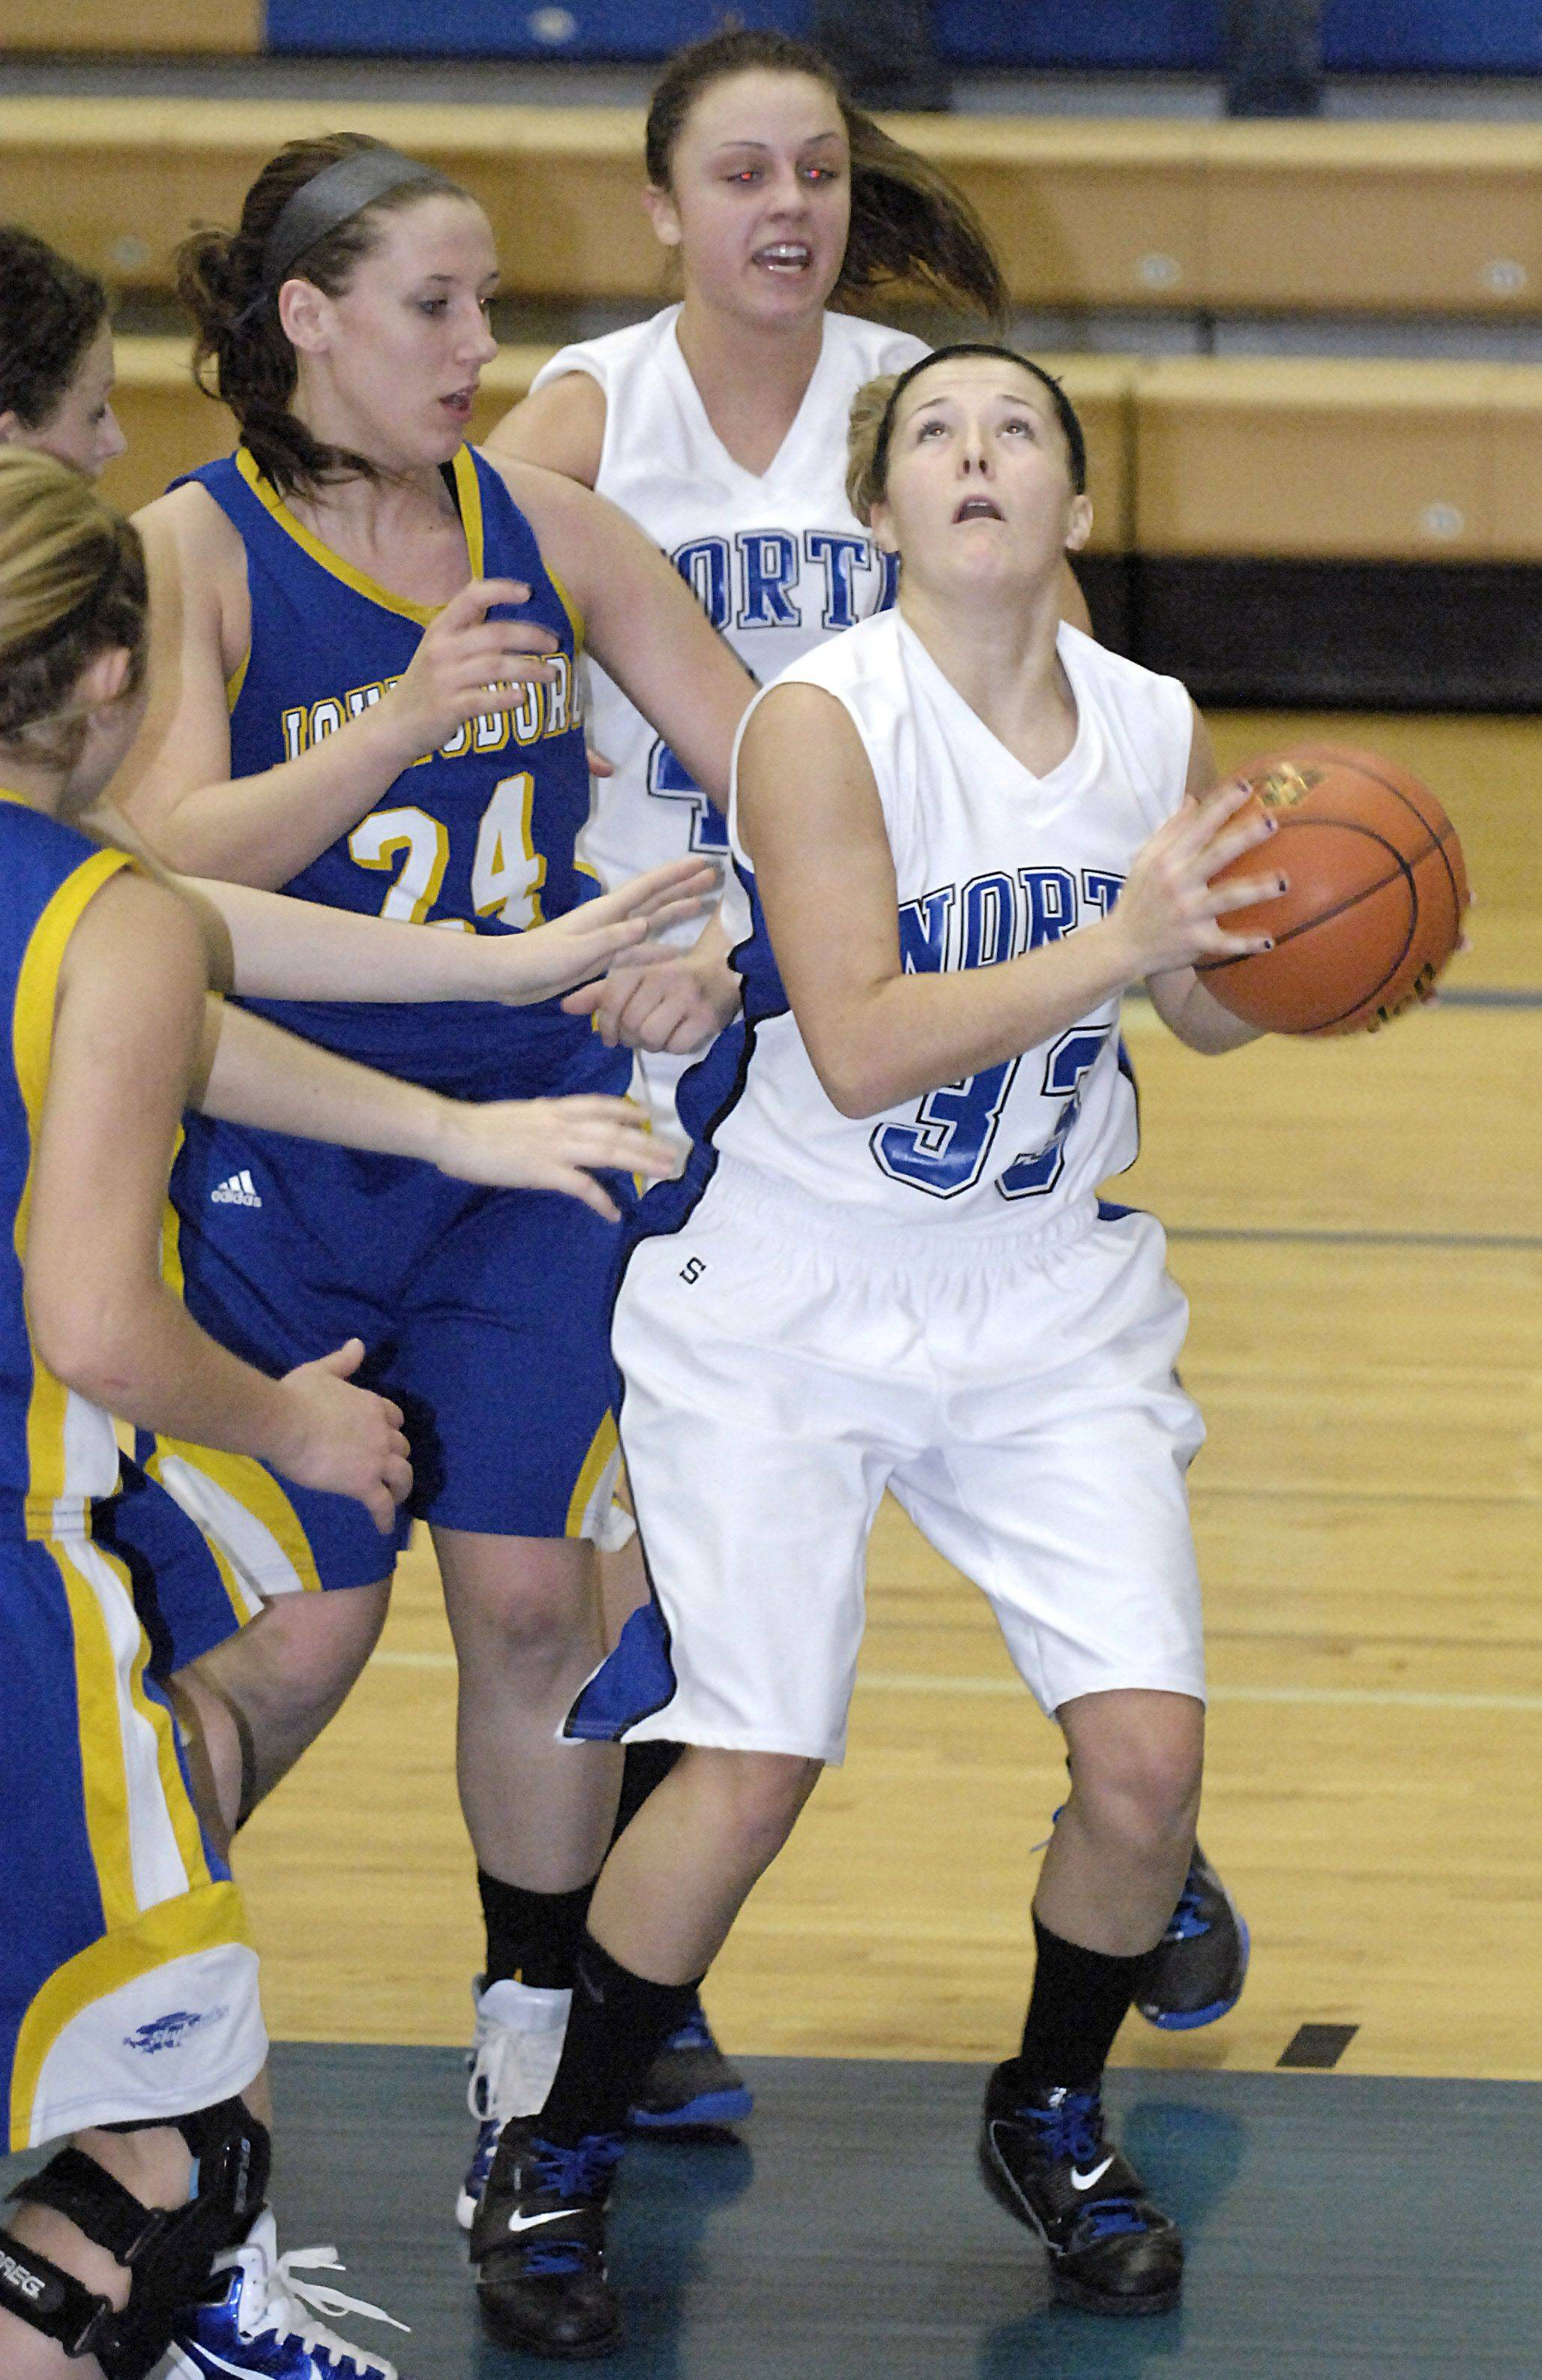 St. Charles North's Taylor Russell grabs a rebound.